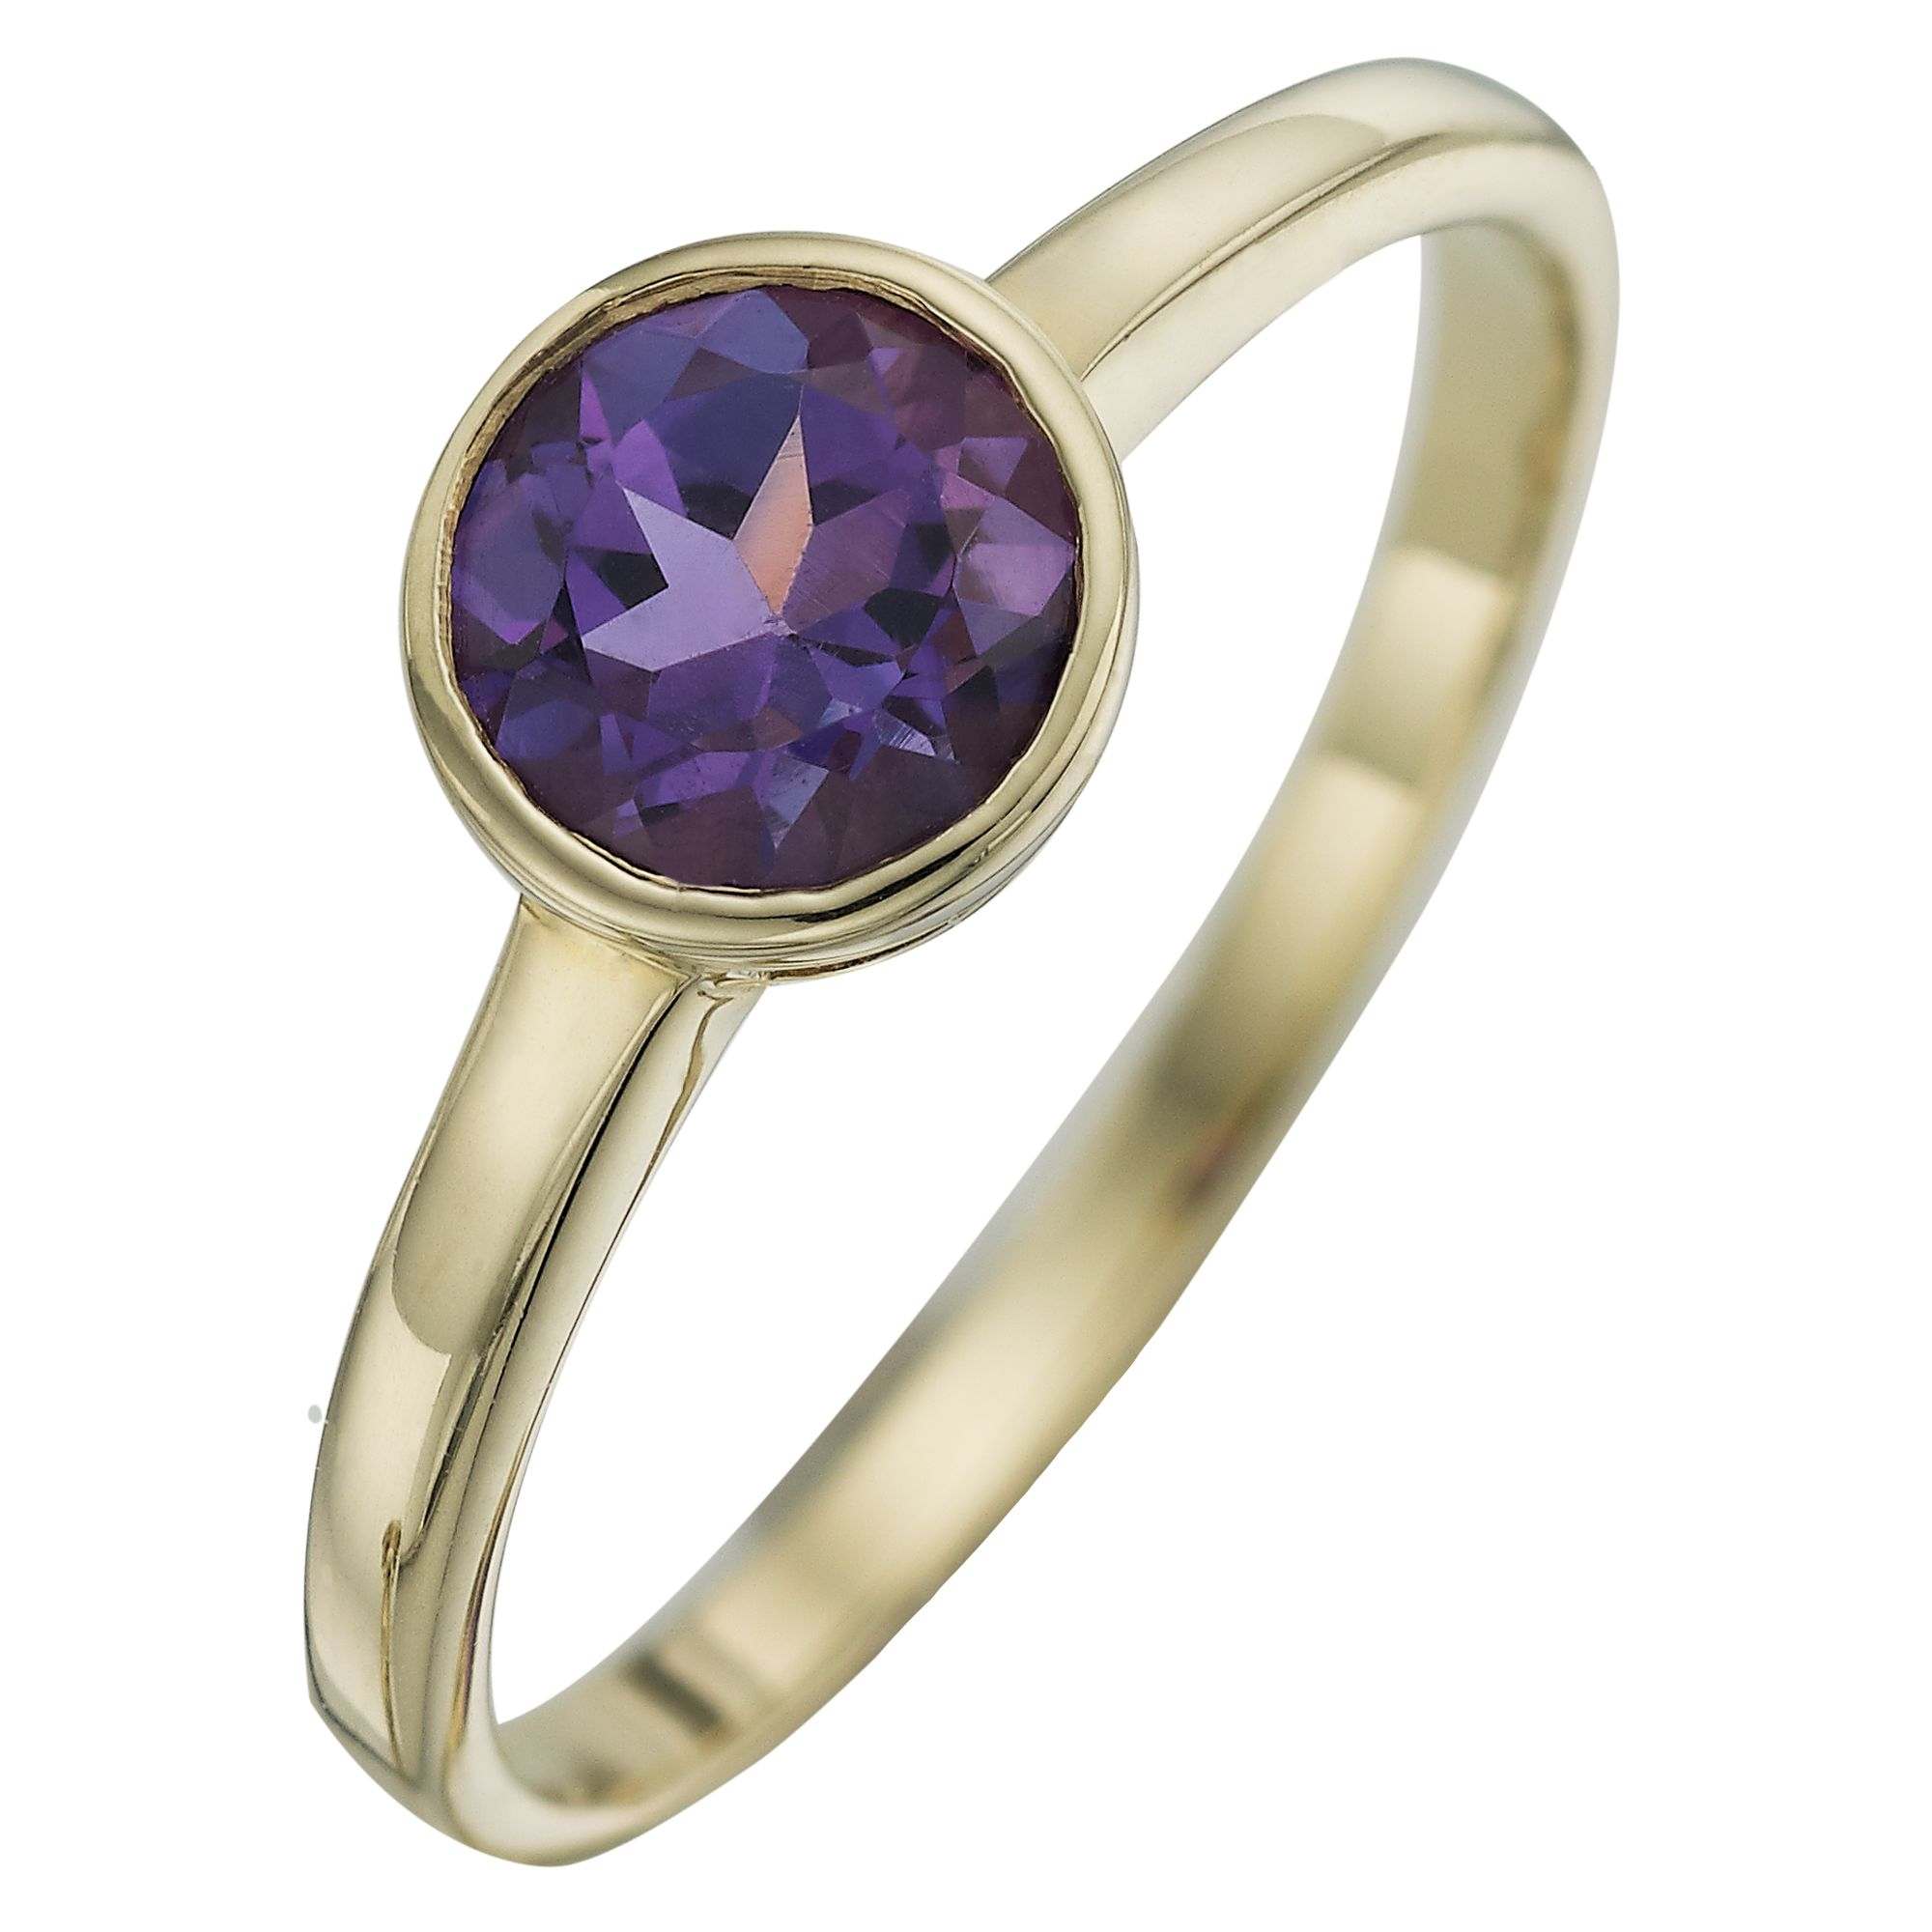 buy cheap gold gemstone ring compare s jewellery